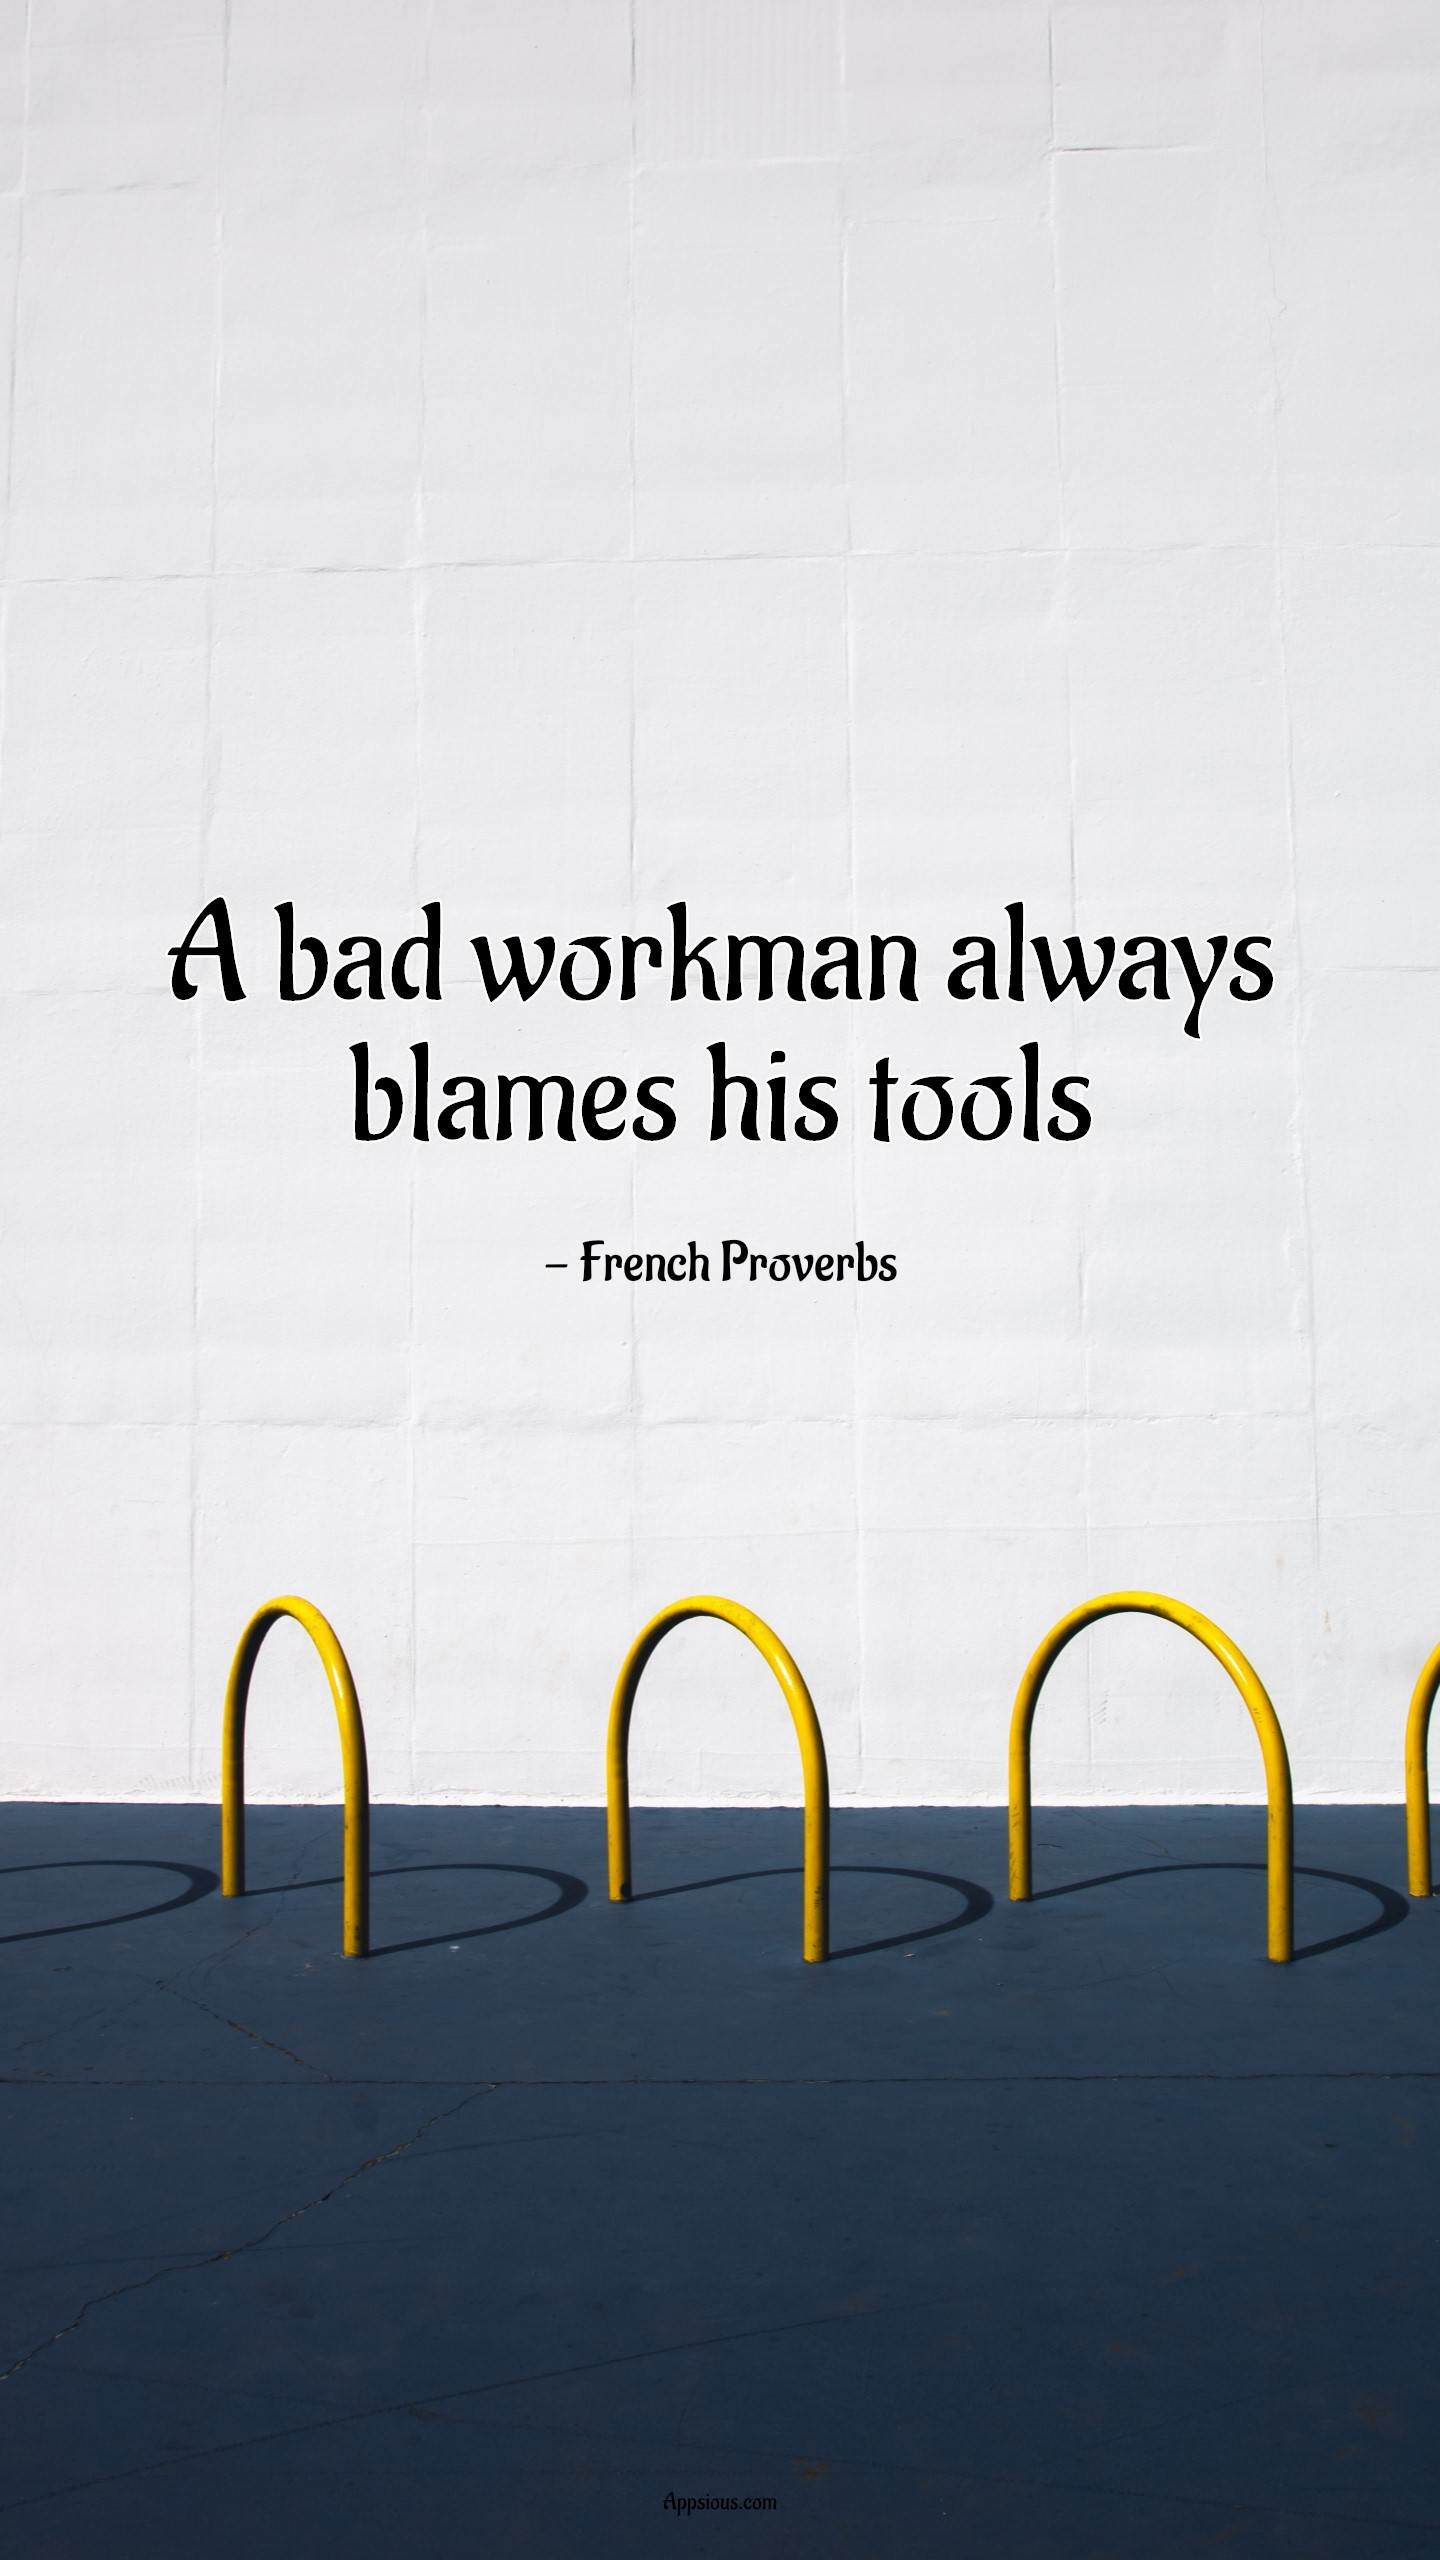 A bad workman always blames his tools